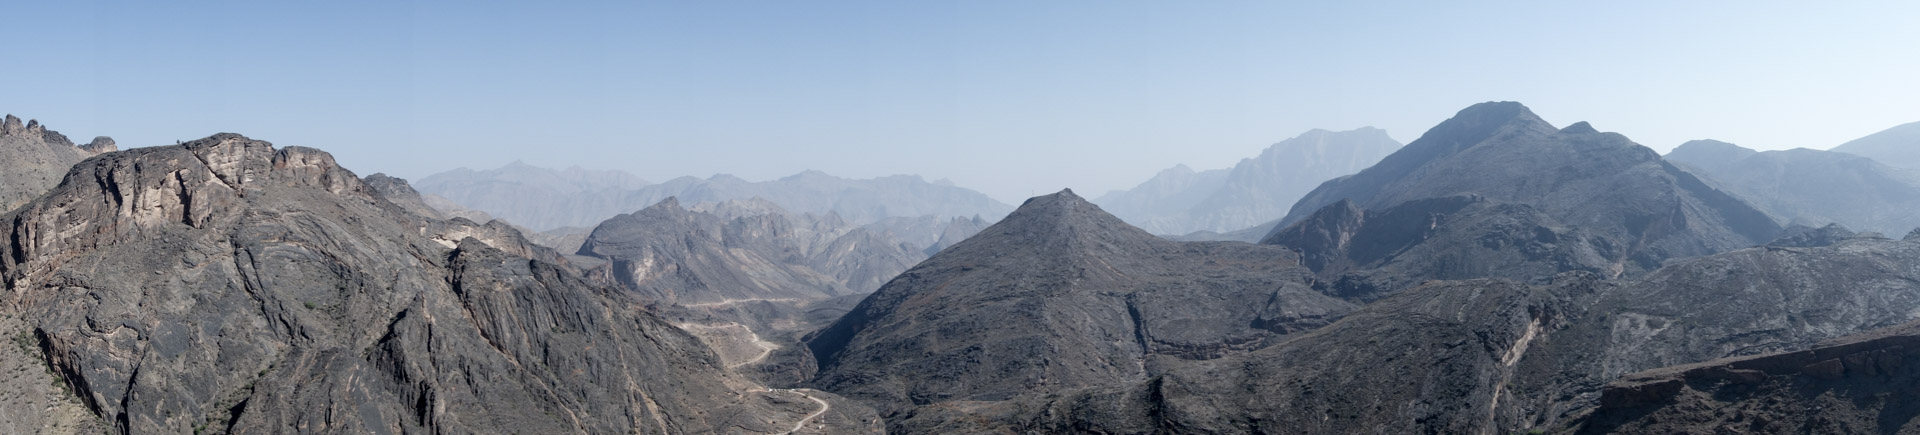 Panorama after a small hike above Bilad Sayt.